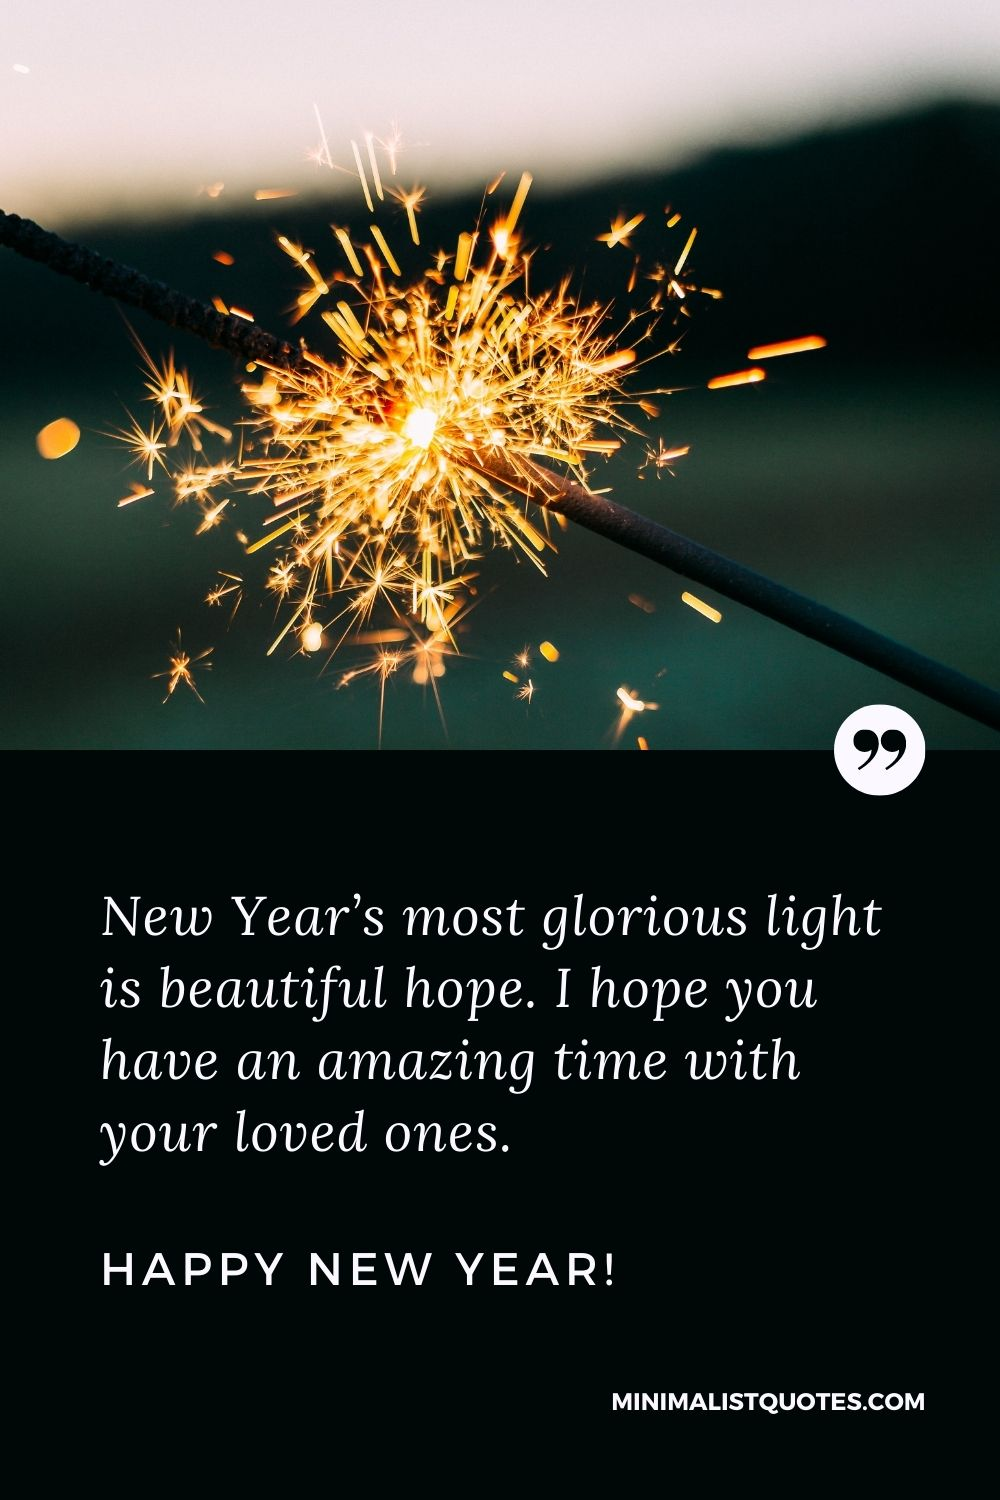 Happy New Year Message For a Friend: New Year's most glorious light is beautiful hope. I hope you have an amazing time with your loved ones. Happy New Year!